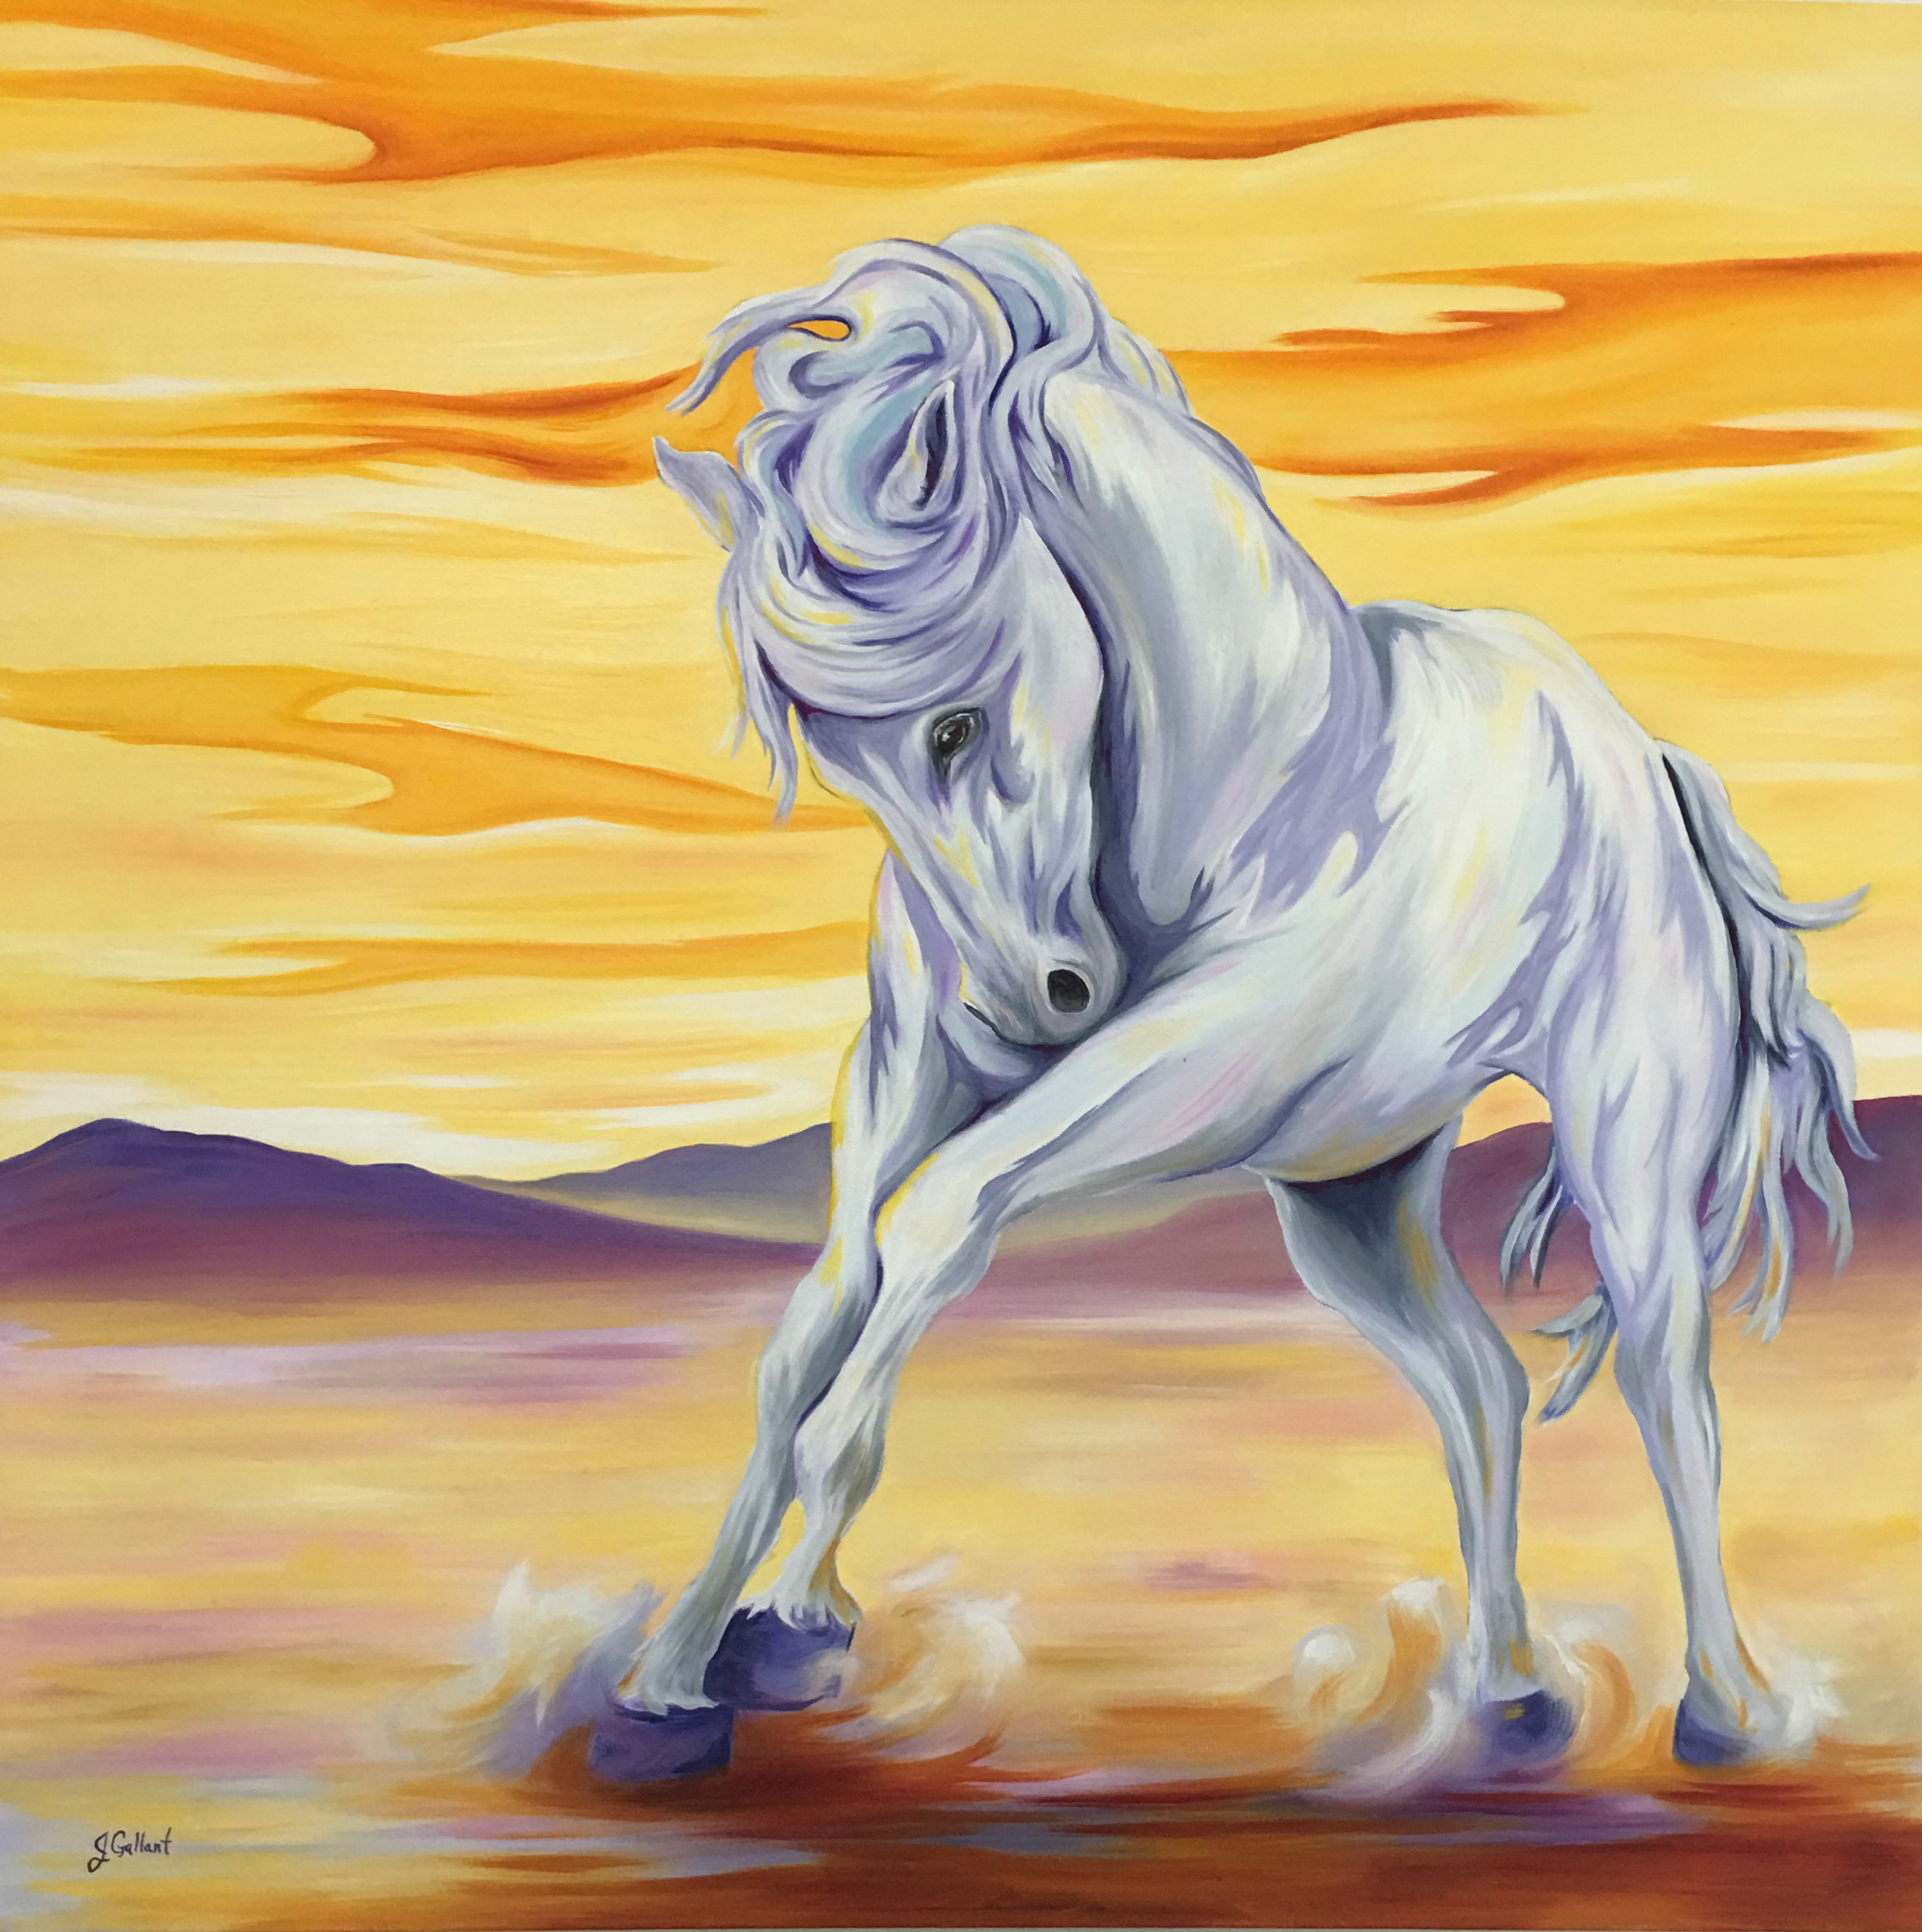 Canvas print of freedom horse by Janice Gallant https://thecreationguild.com/decorator-prints/